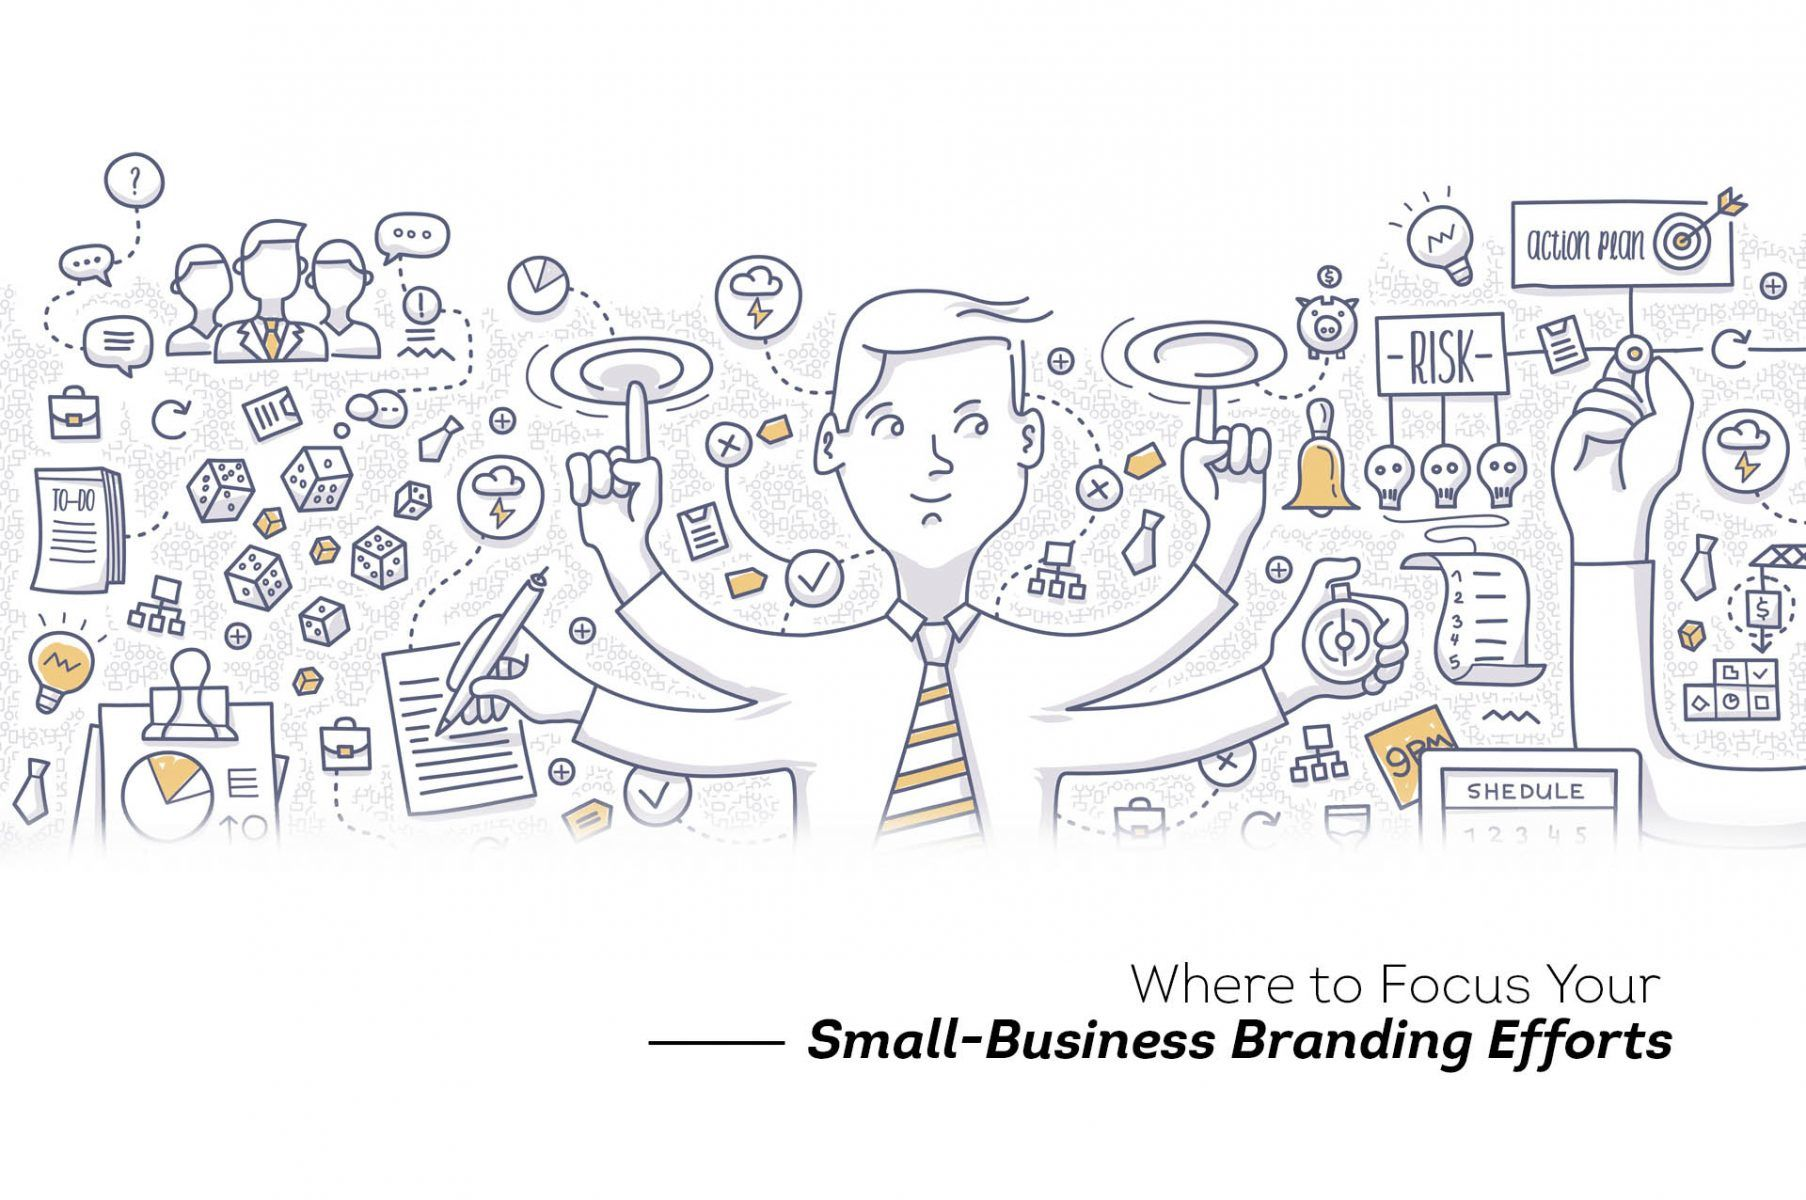 Why should small businesses identify the most relevant branding touchpoints and focus their attention on them.